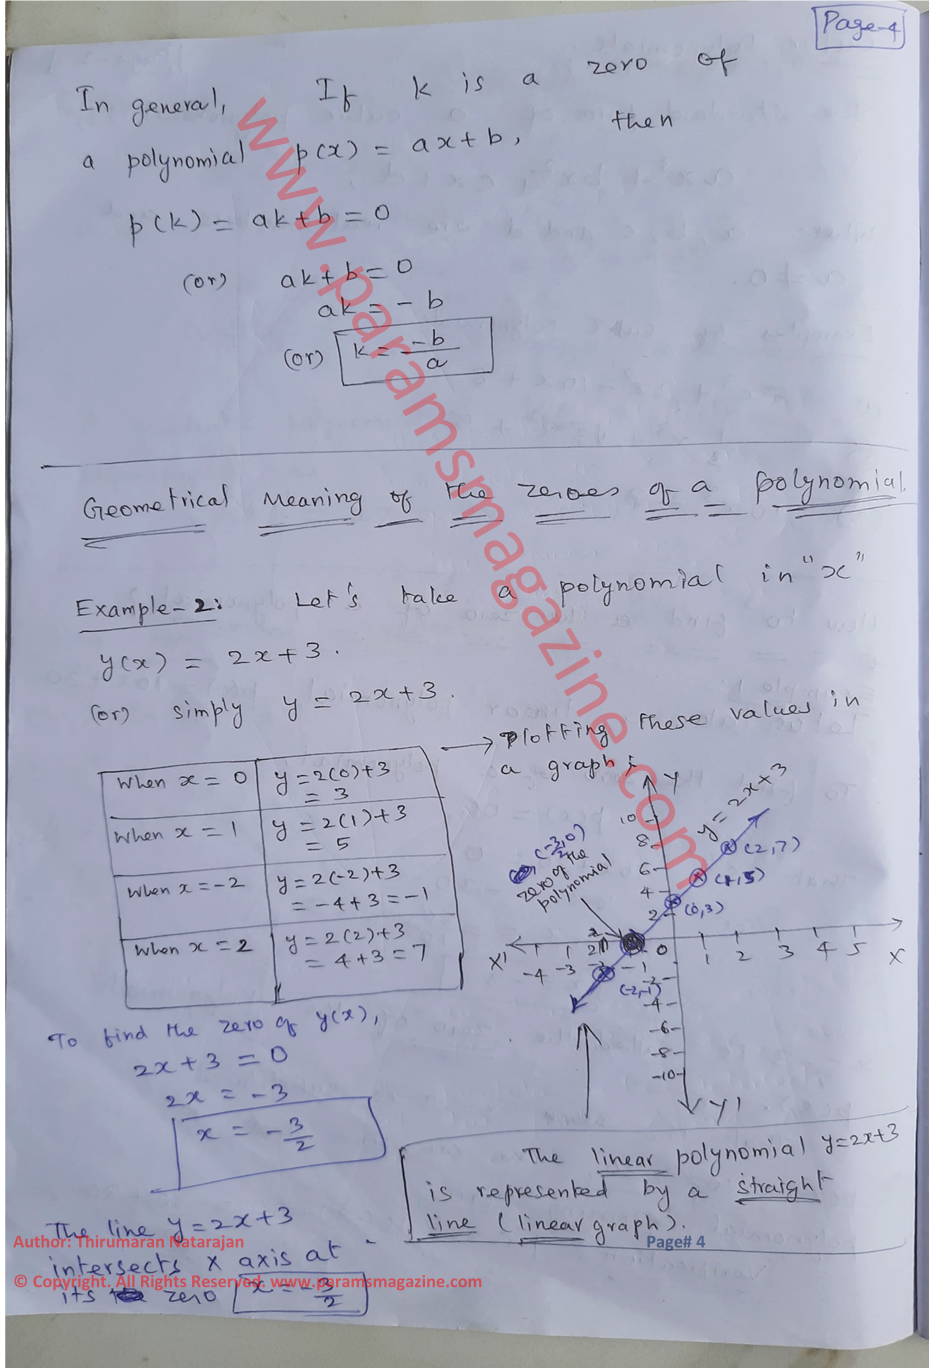 Class-10 - Polynomials - Notes - Page-4